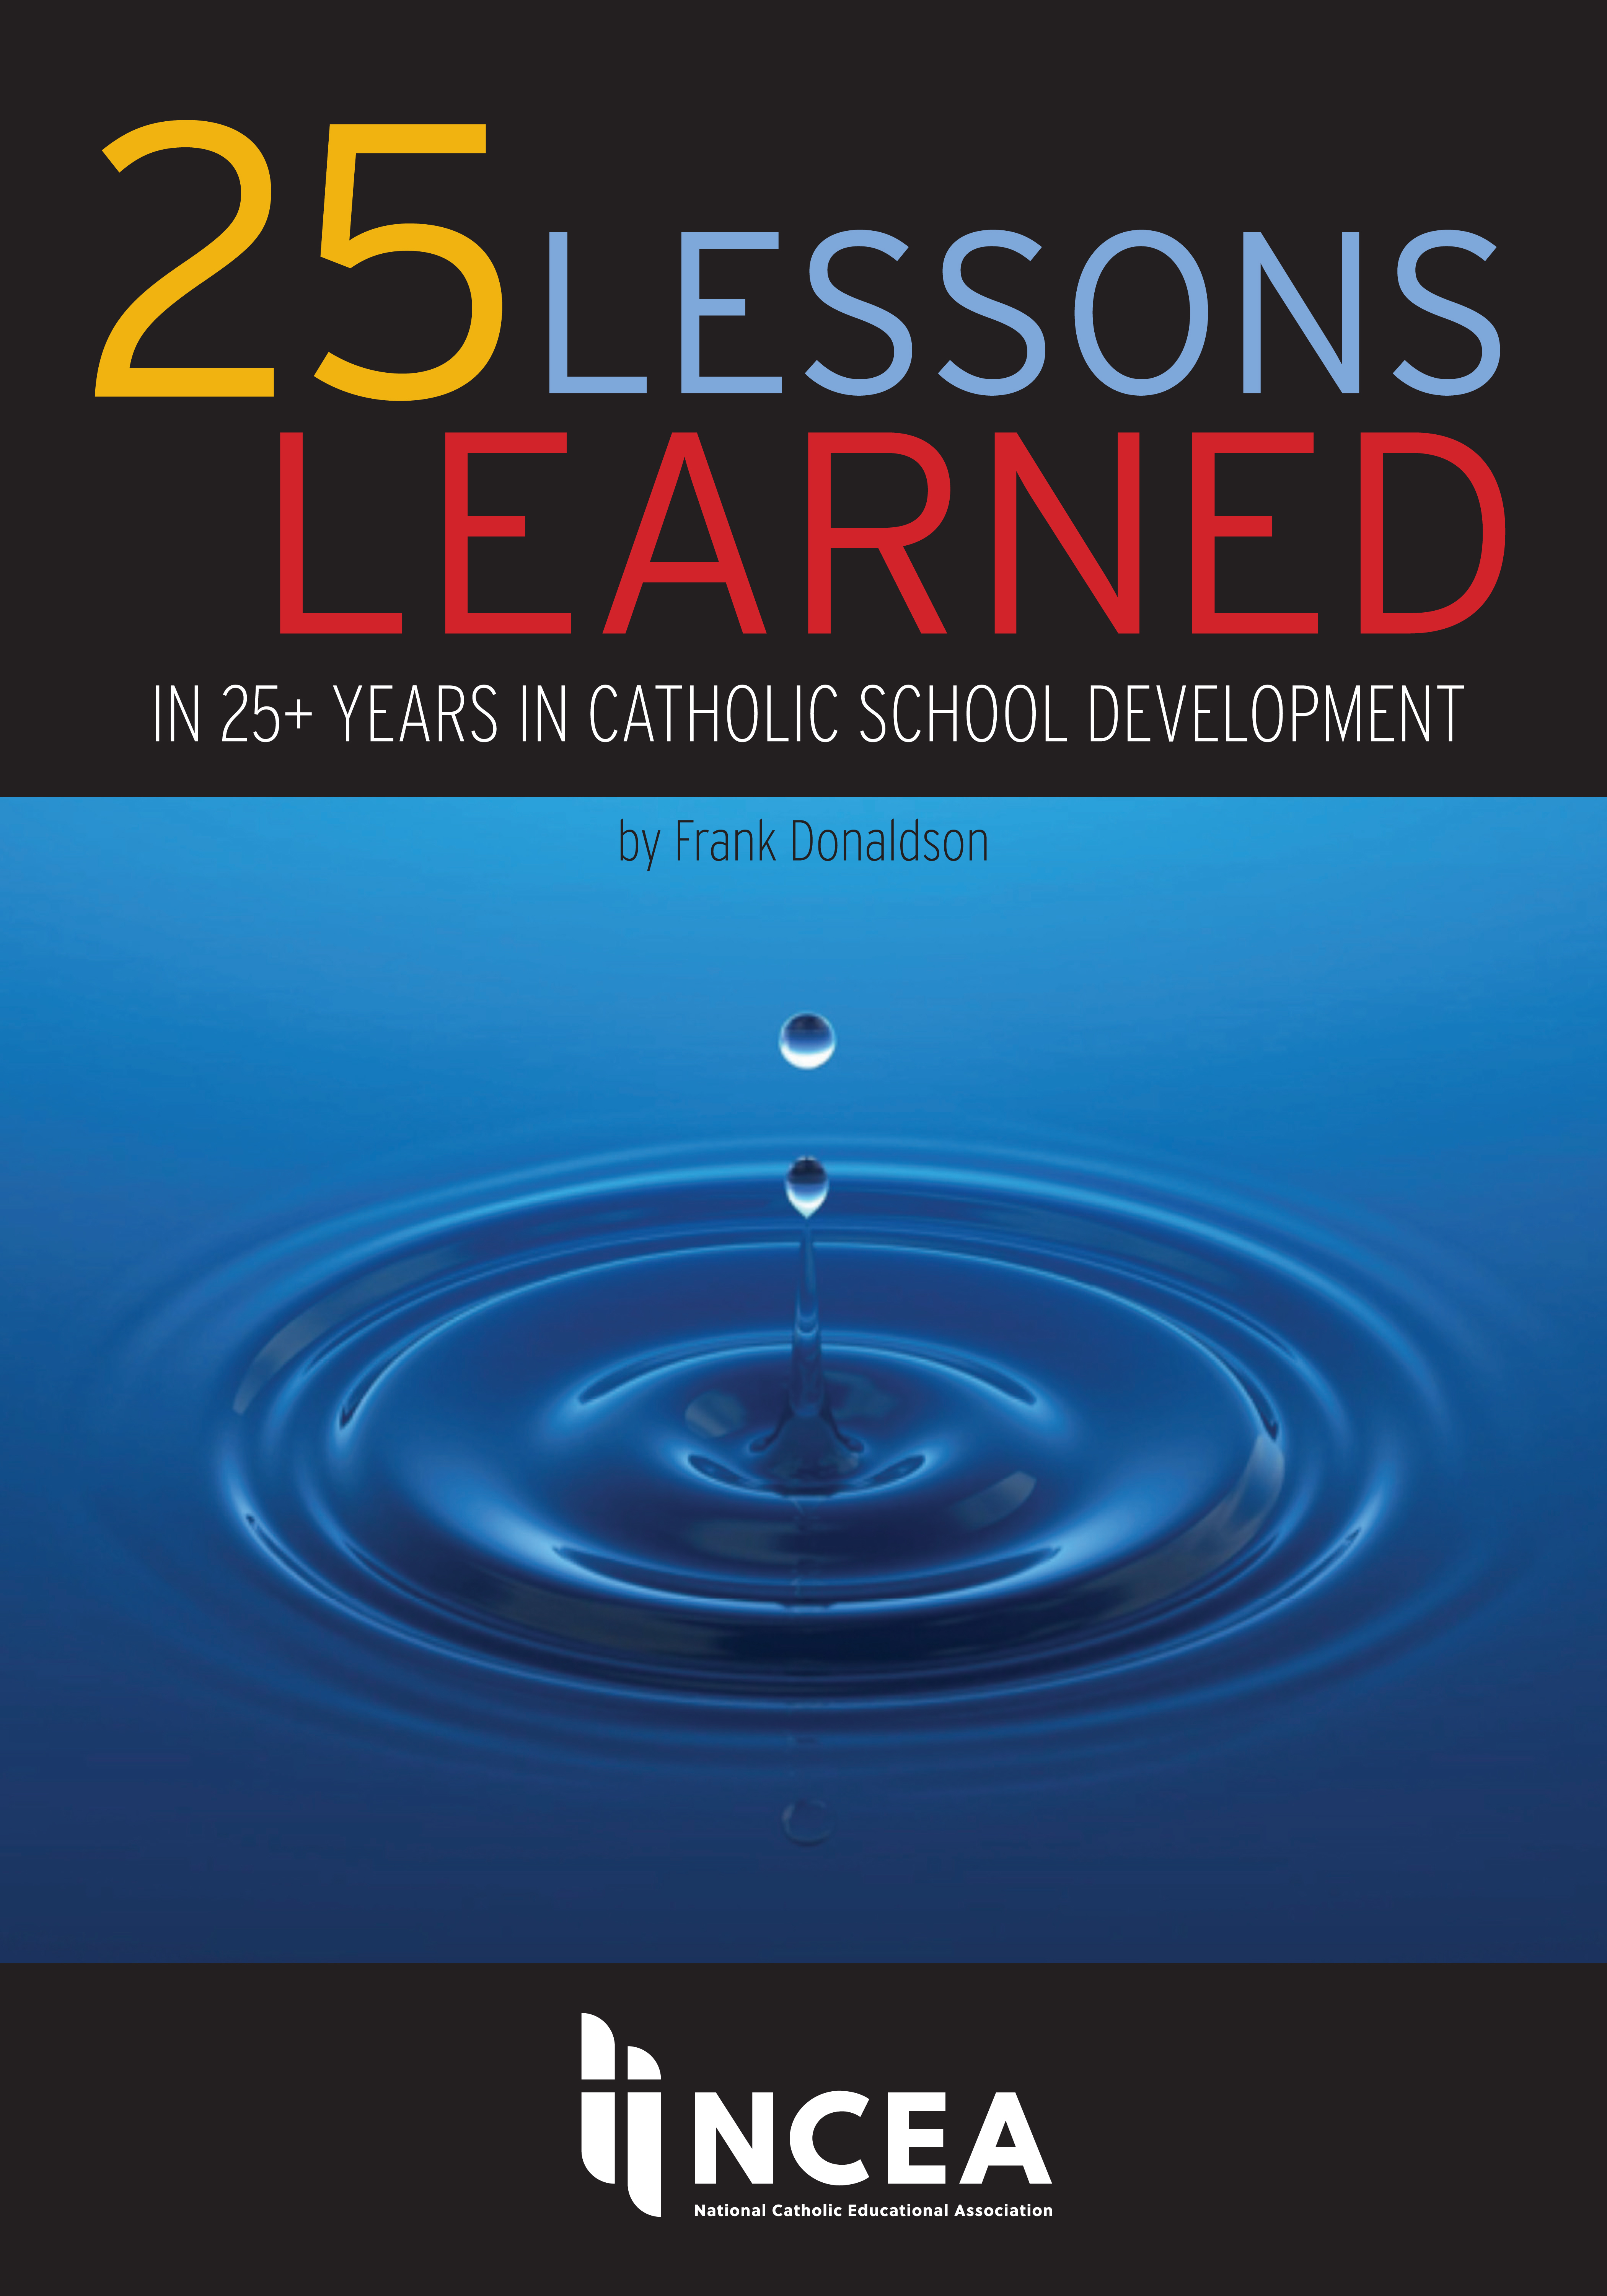 25 Lessons Learned in 25+ Years in Catholic School Development